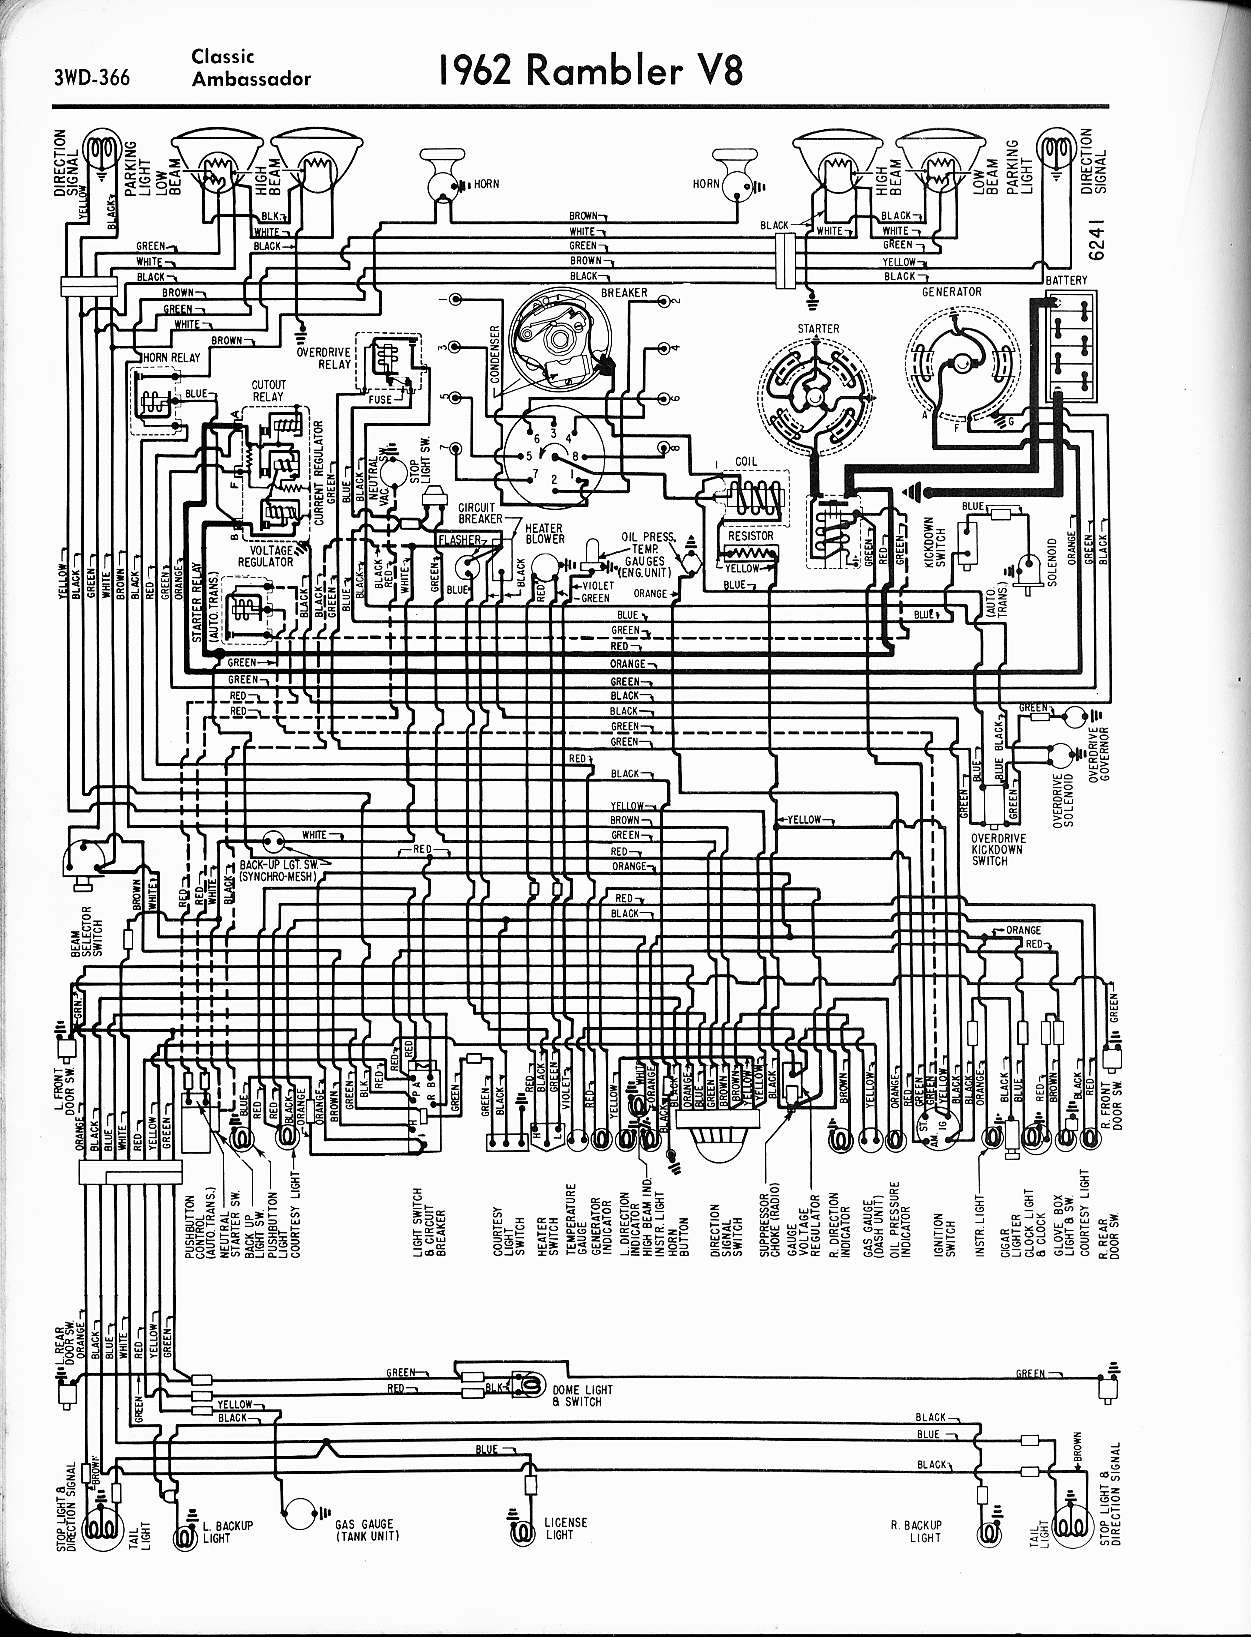 MWire5765 366 rambler wiring diagrams the old car manual project 1964 rambler fuse box diagram at suagrazia.org